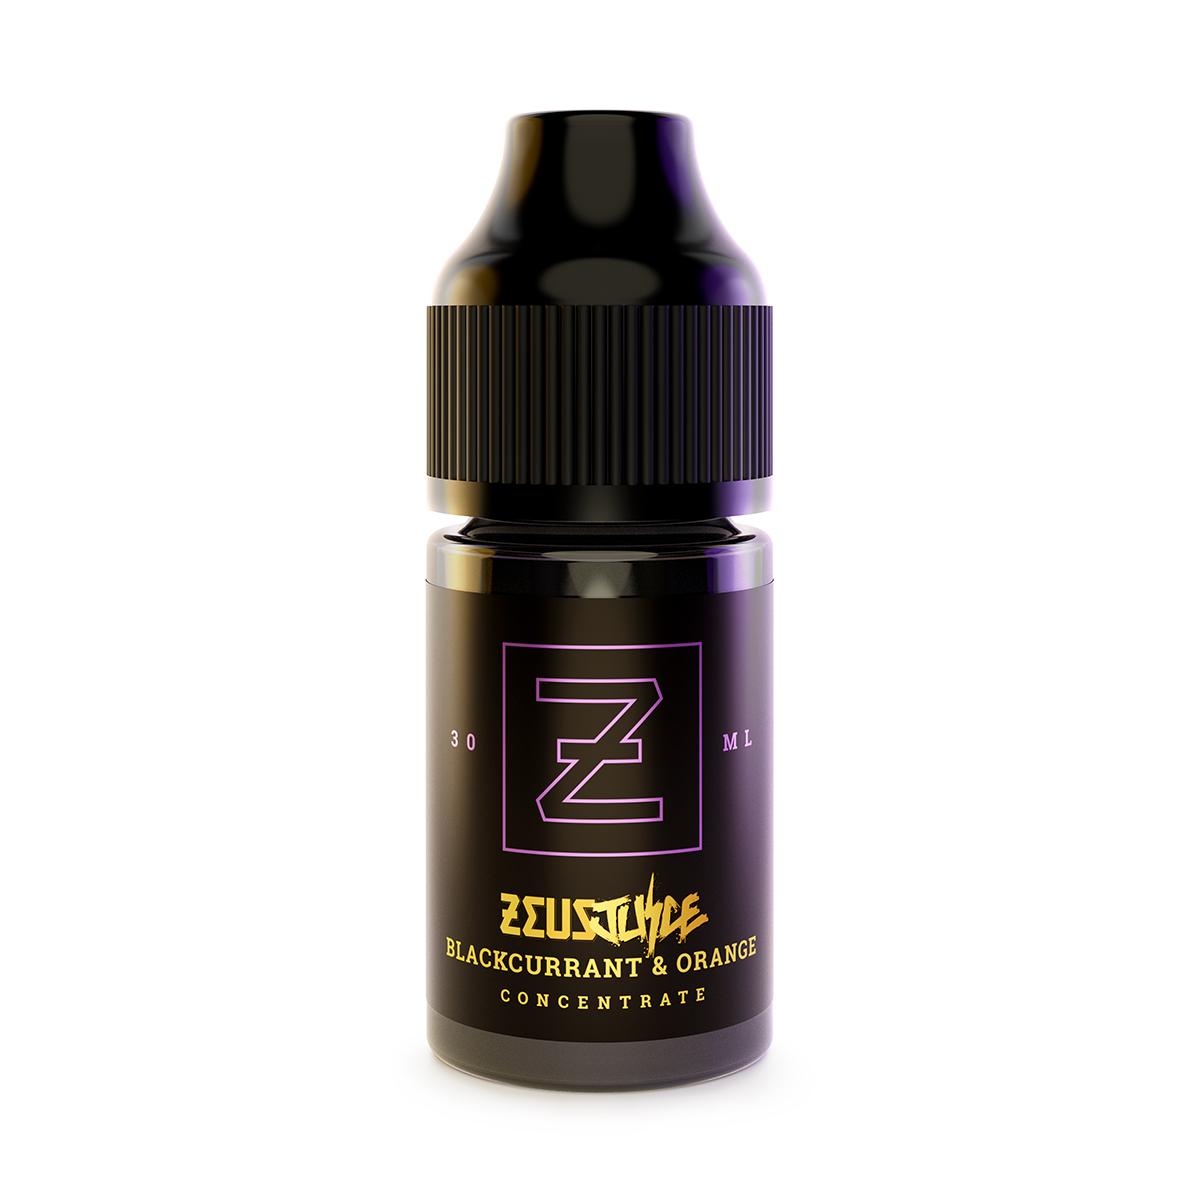 Blackcurrant & Orange Flavour Concentrate by Zeus Juice